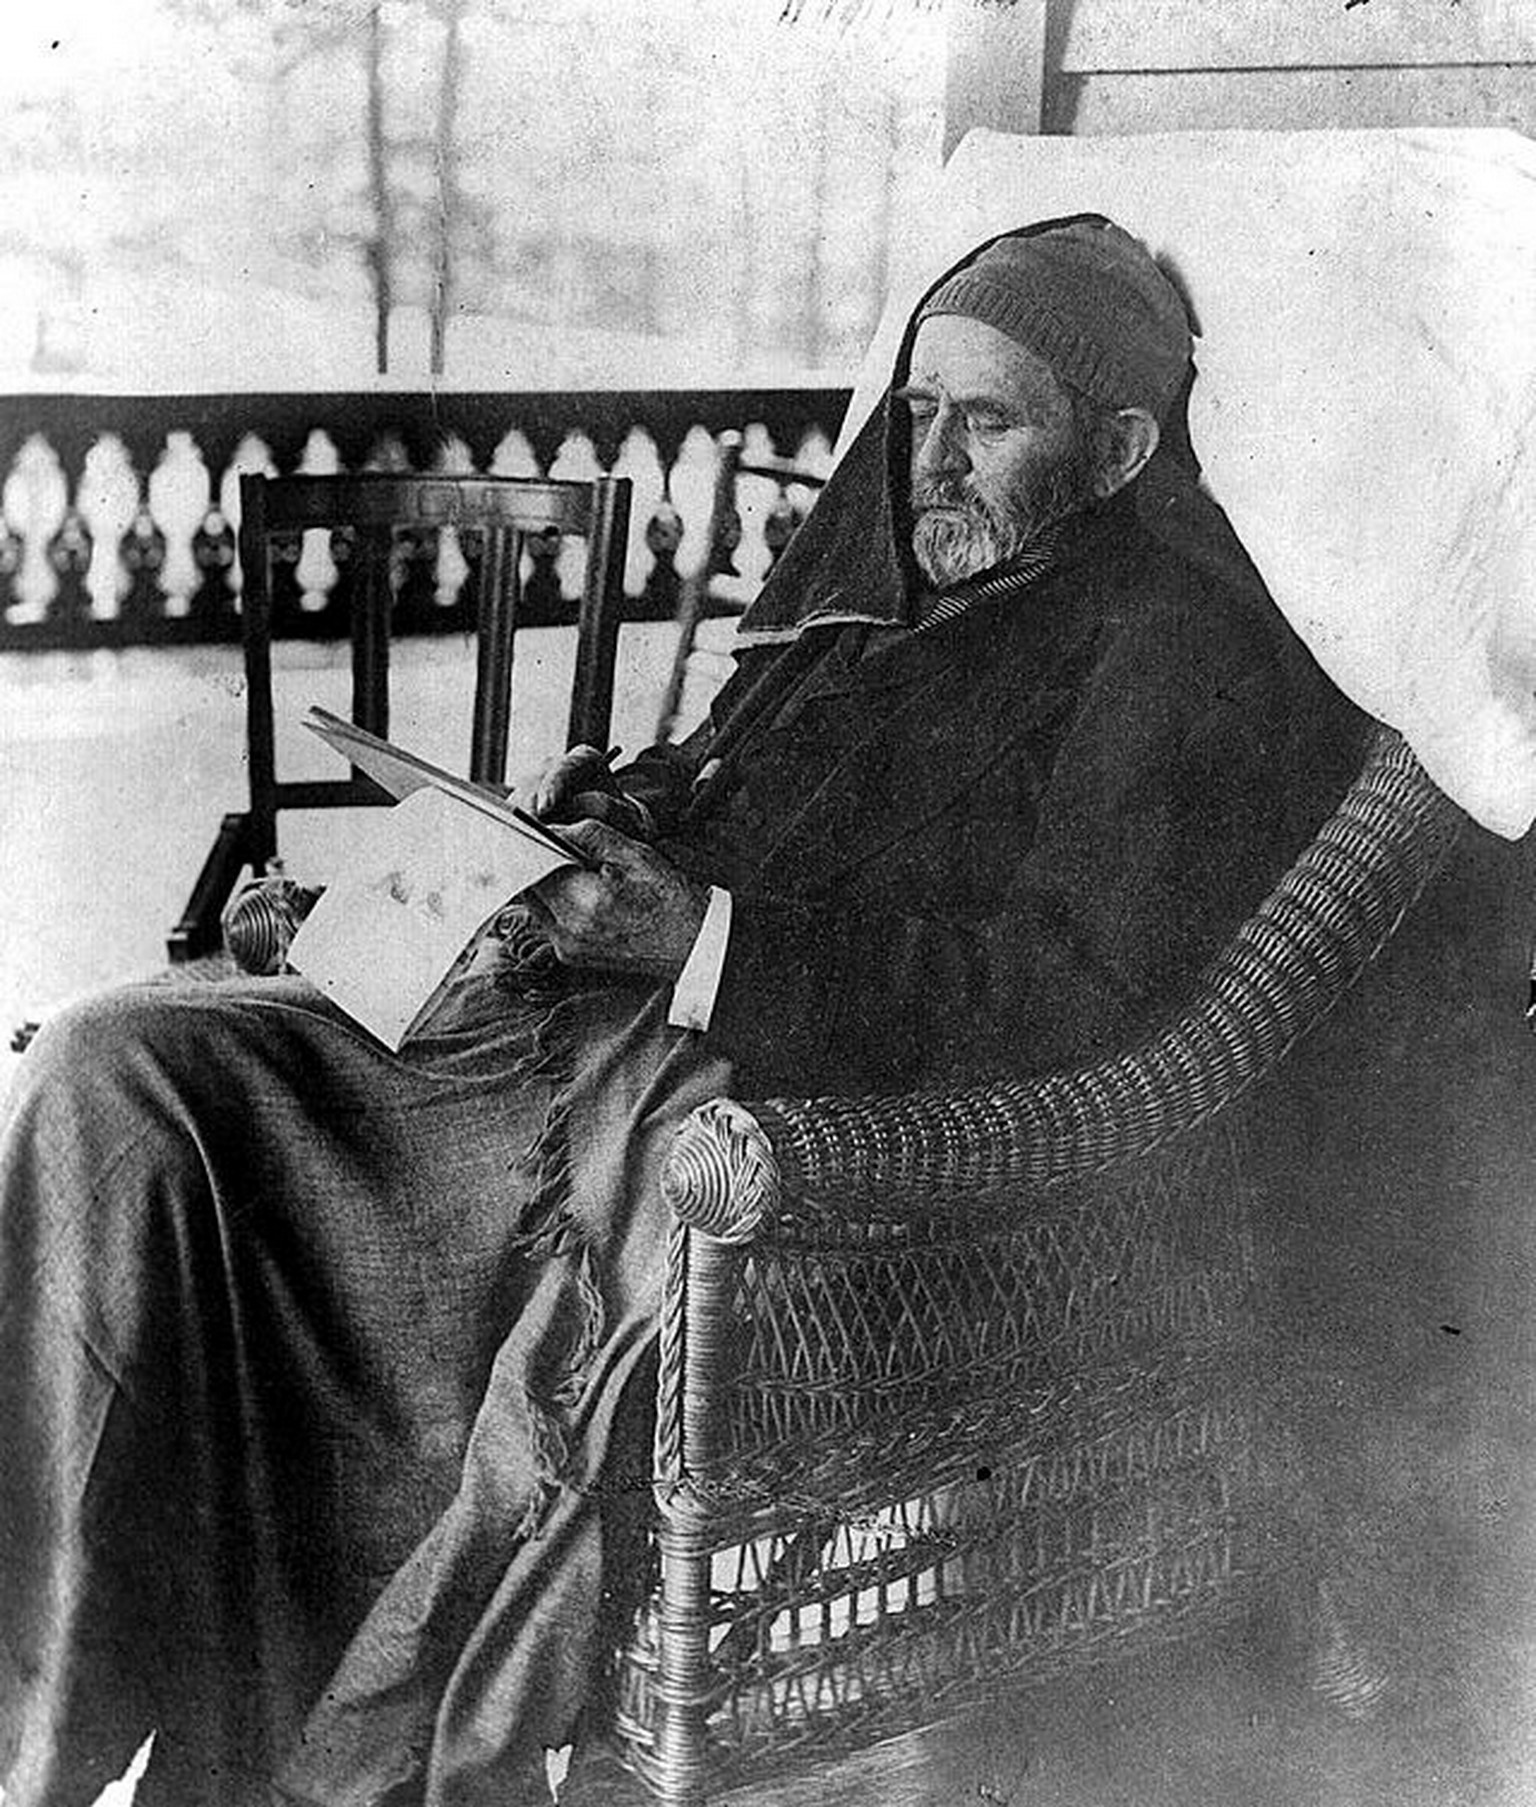 Grant writing his memoirs, days before his death